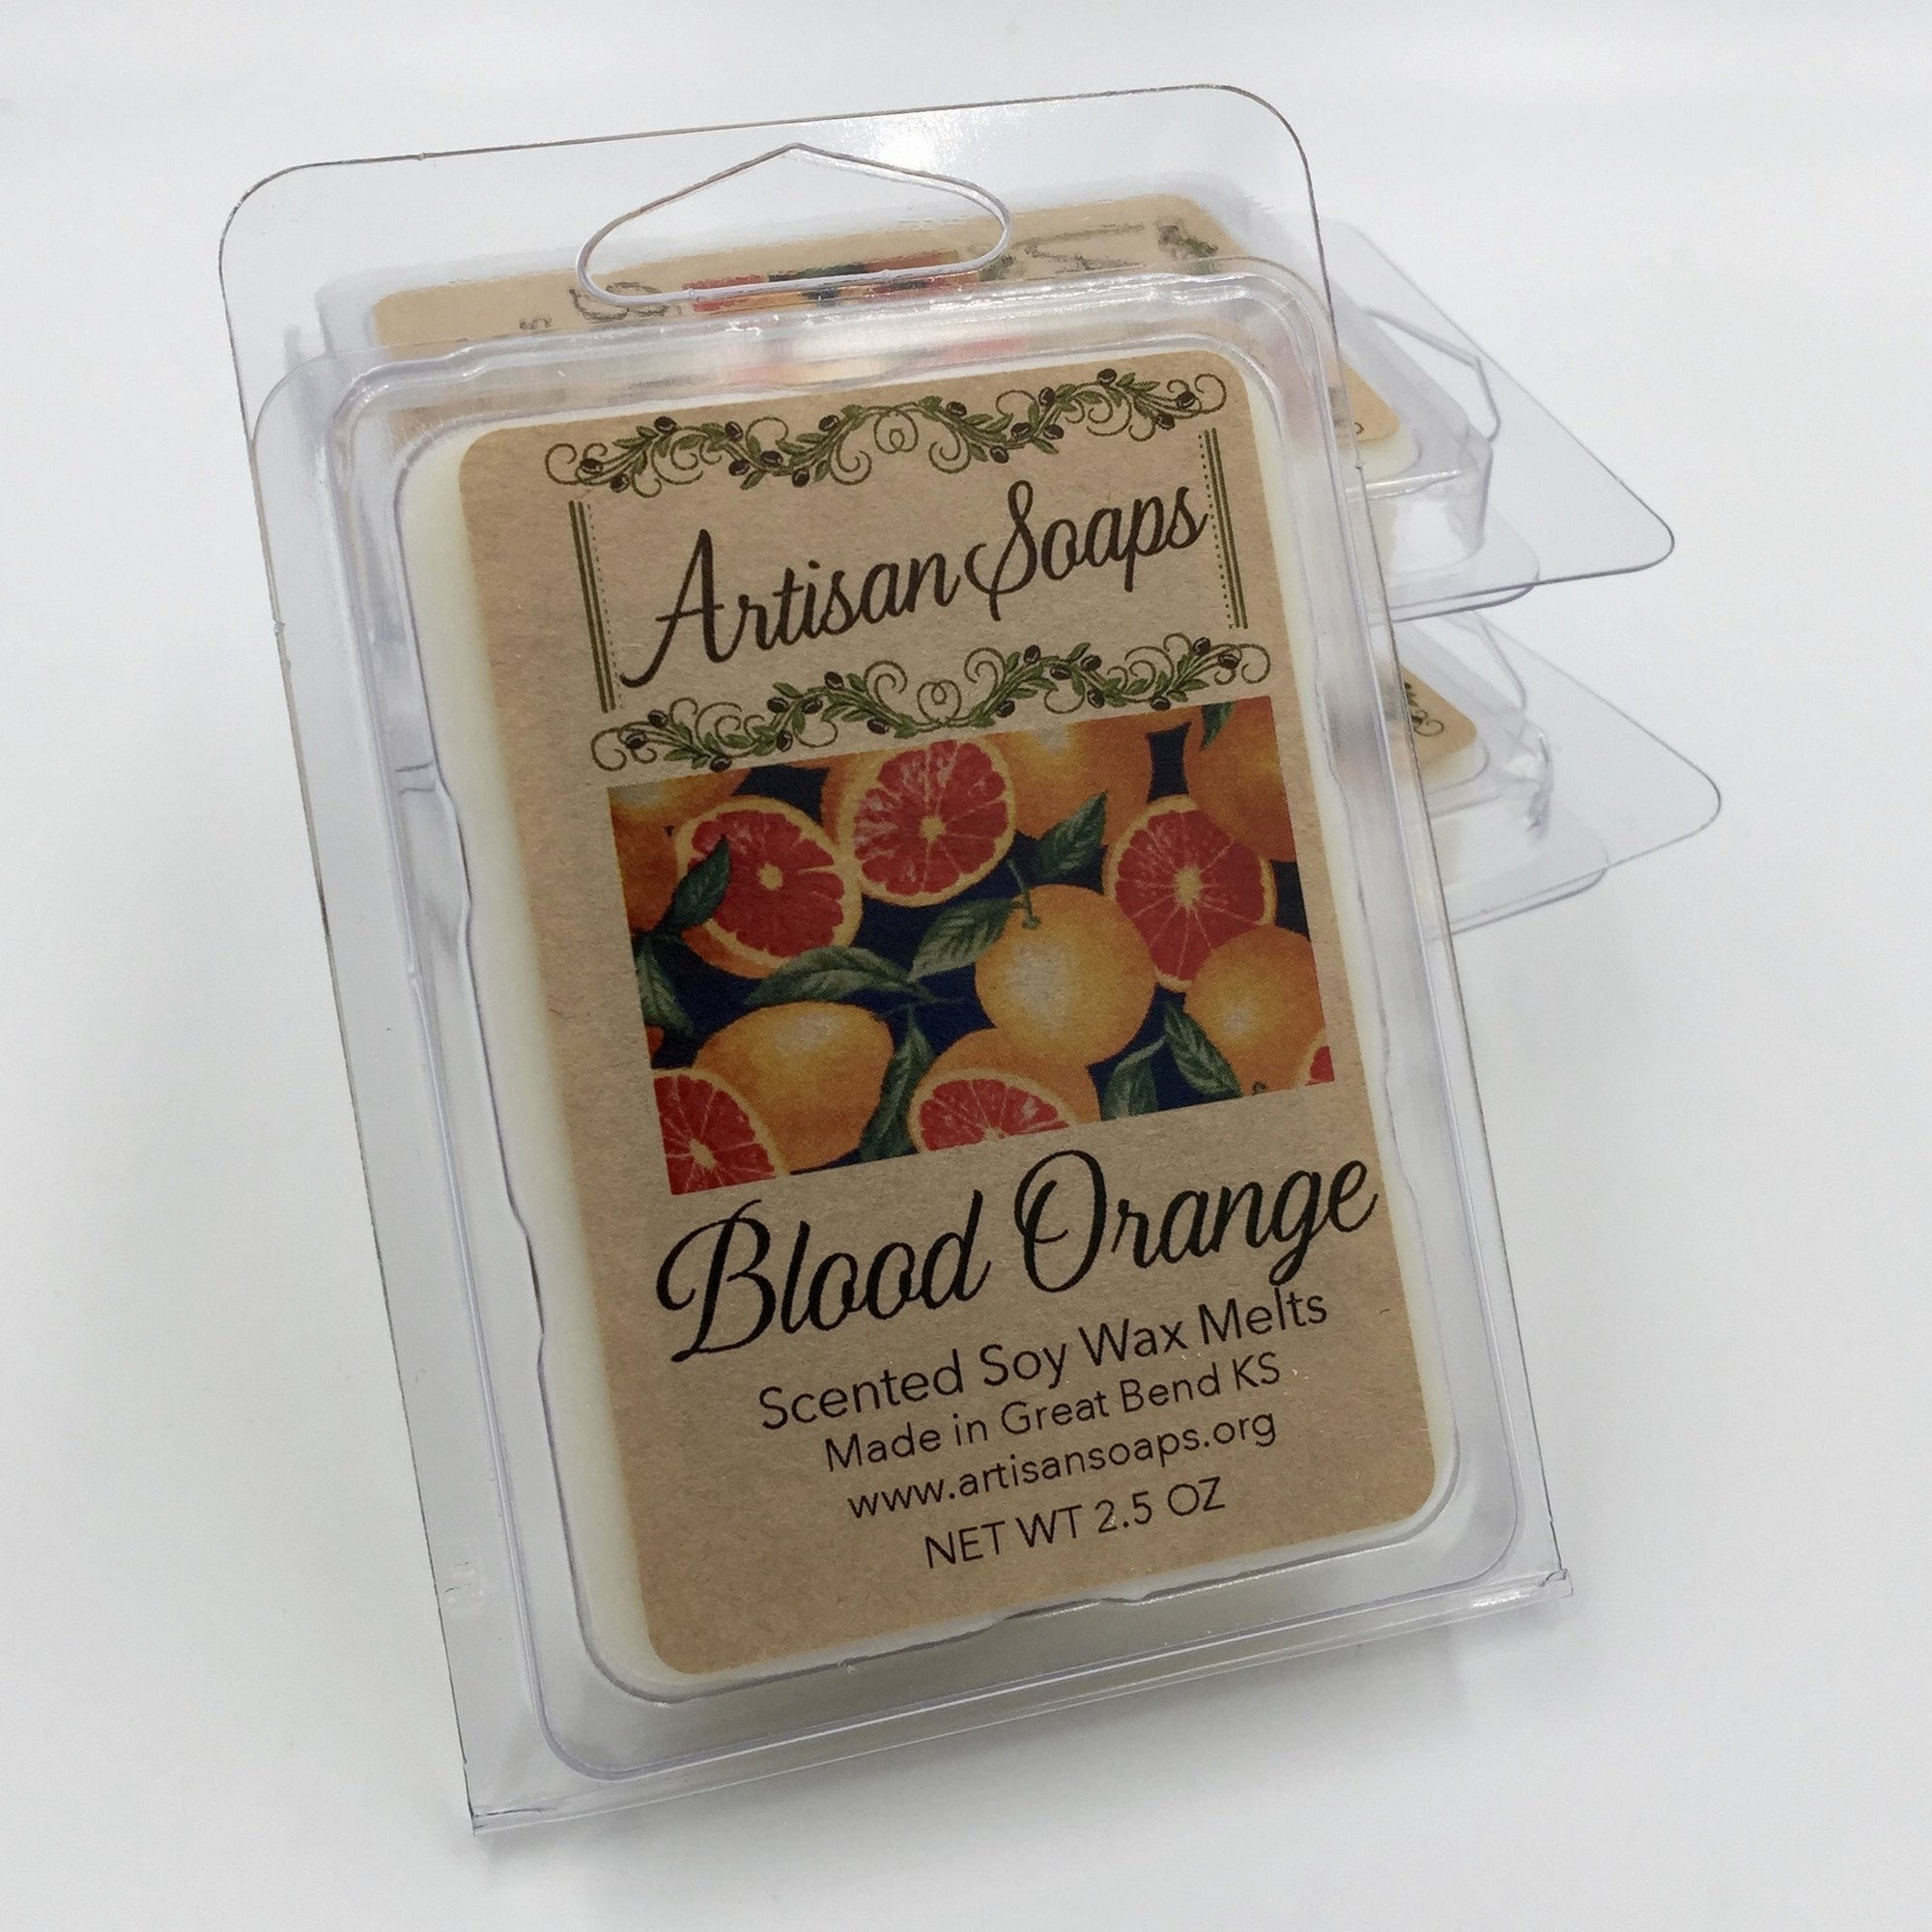 Blood Orange Soy Wax Melt - Artisan Soaps